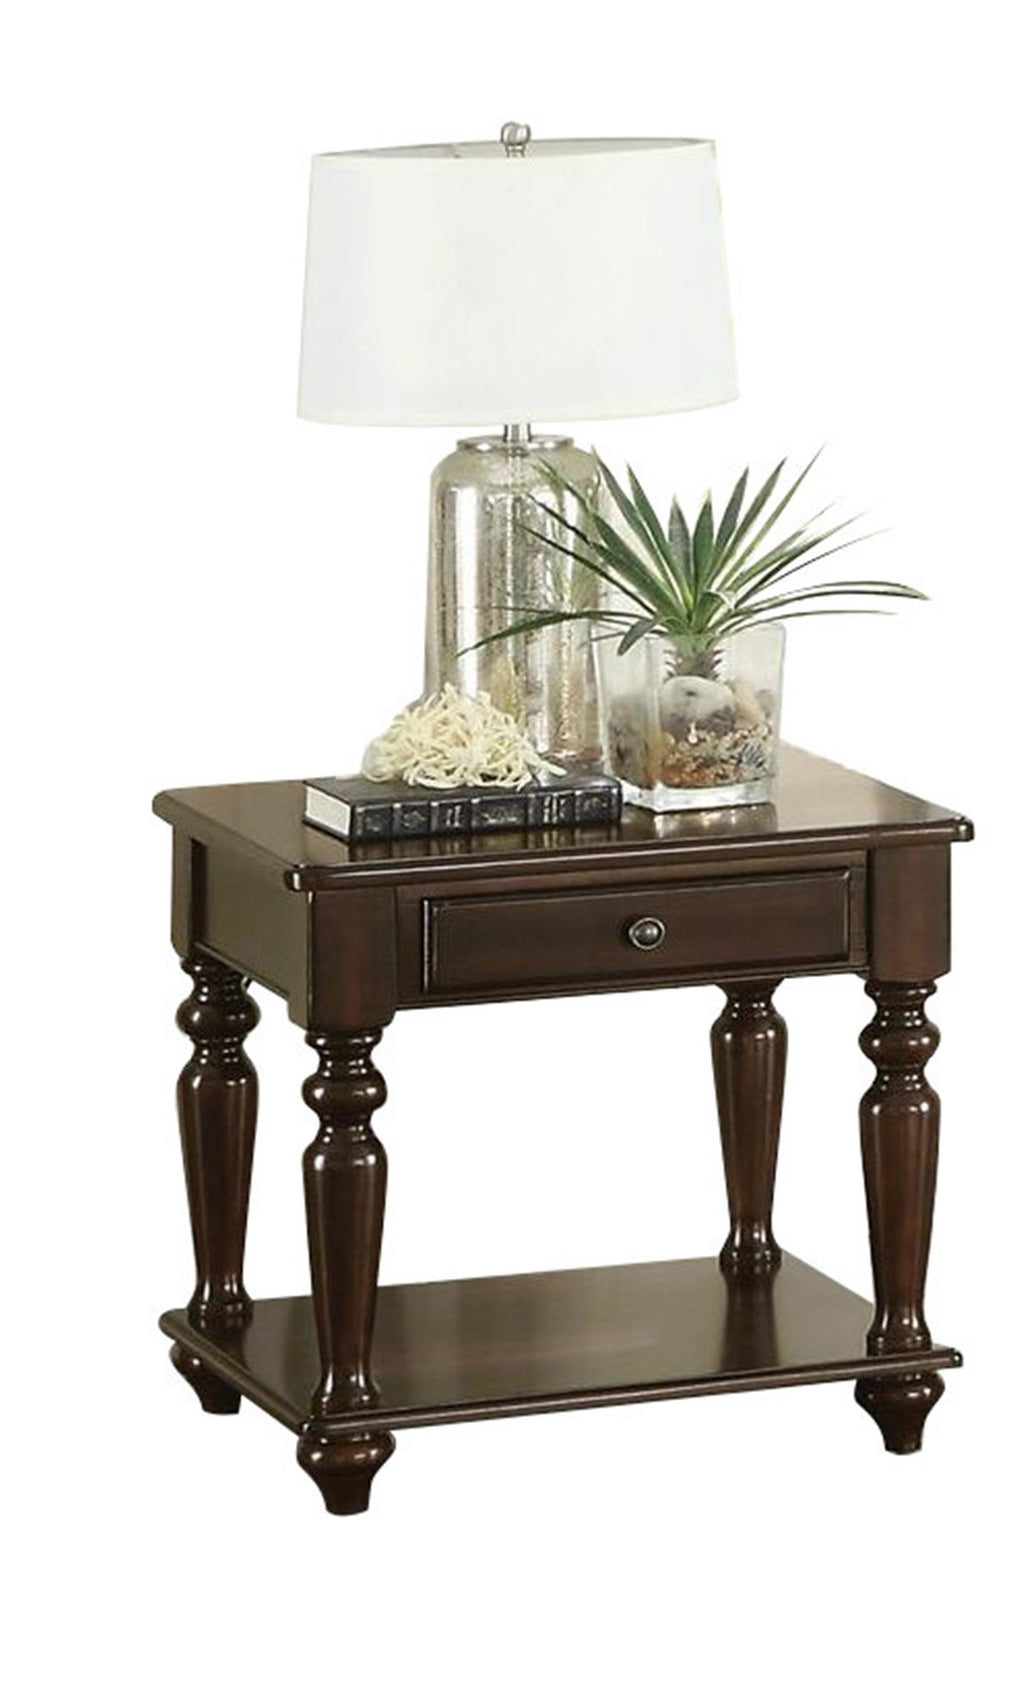 Homelegance Lovington End Table with Functional Drawer in Espresso